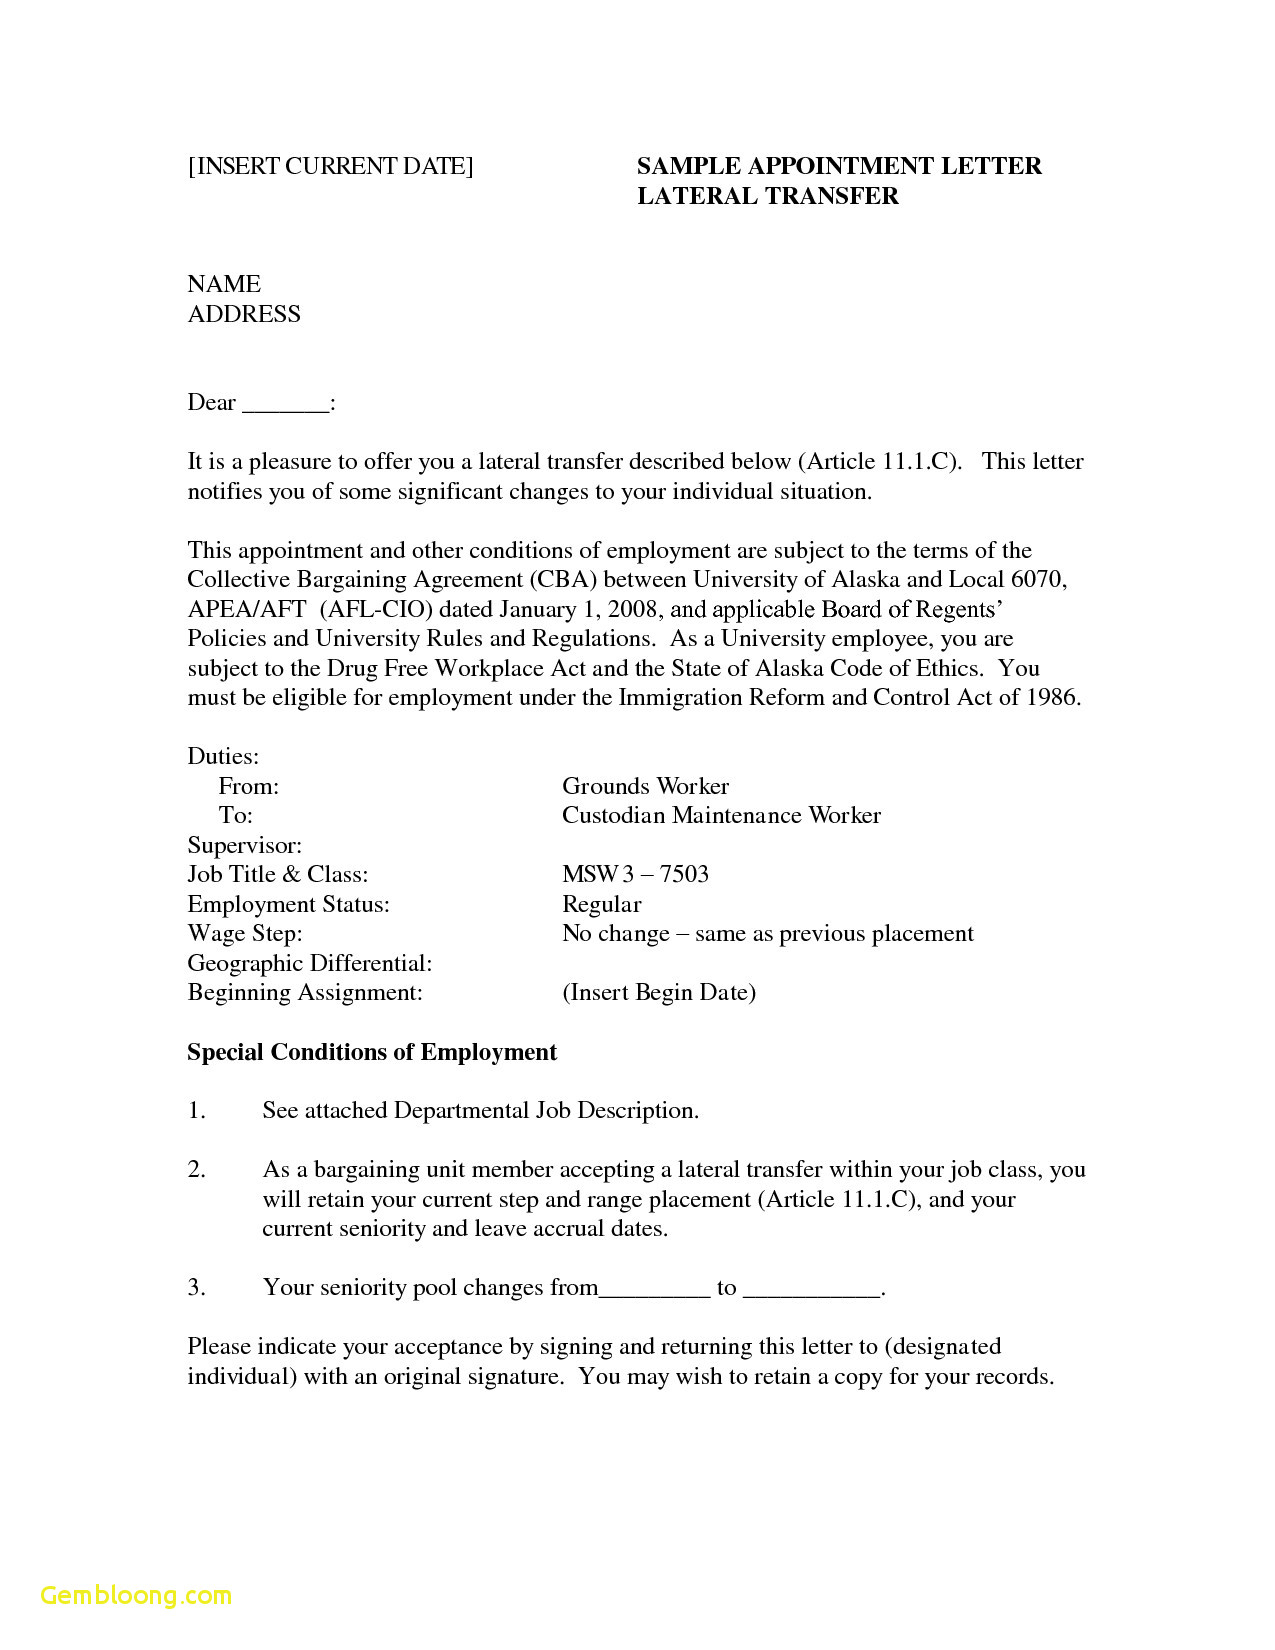 letter of employment template word example-Resume with Template Download now Sample Resume In Word format Cover Letter Template Word 2014 14-p